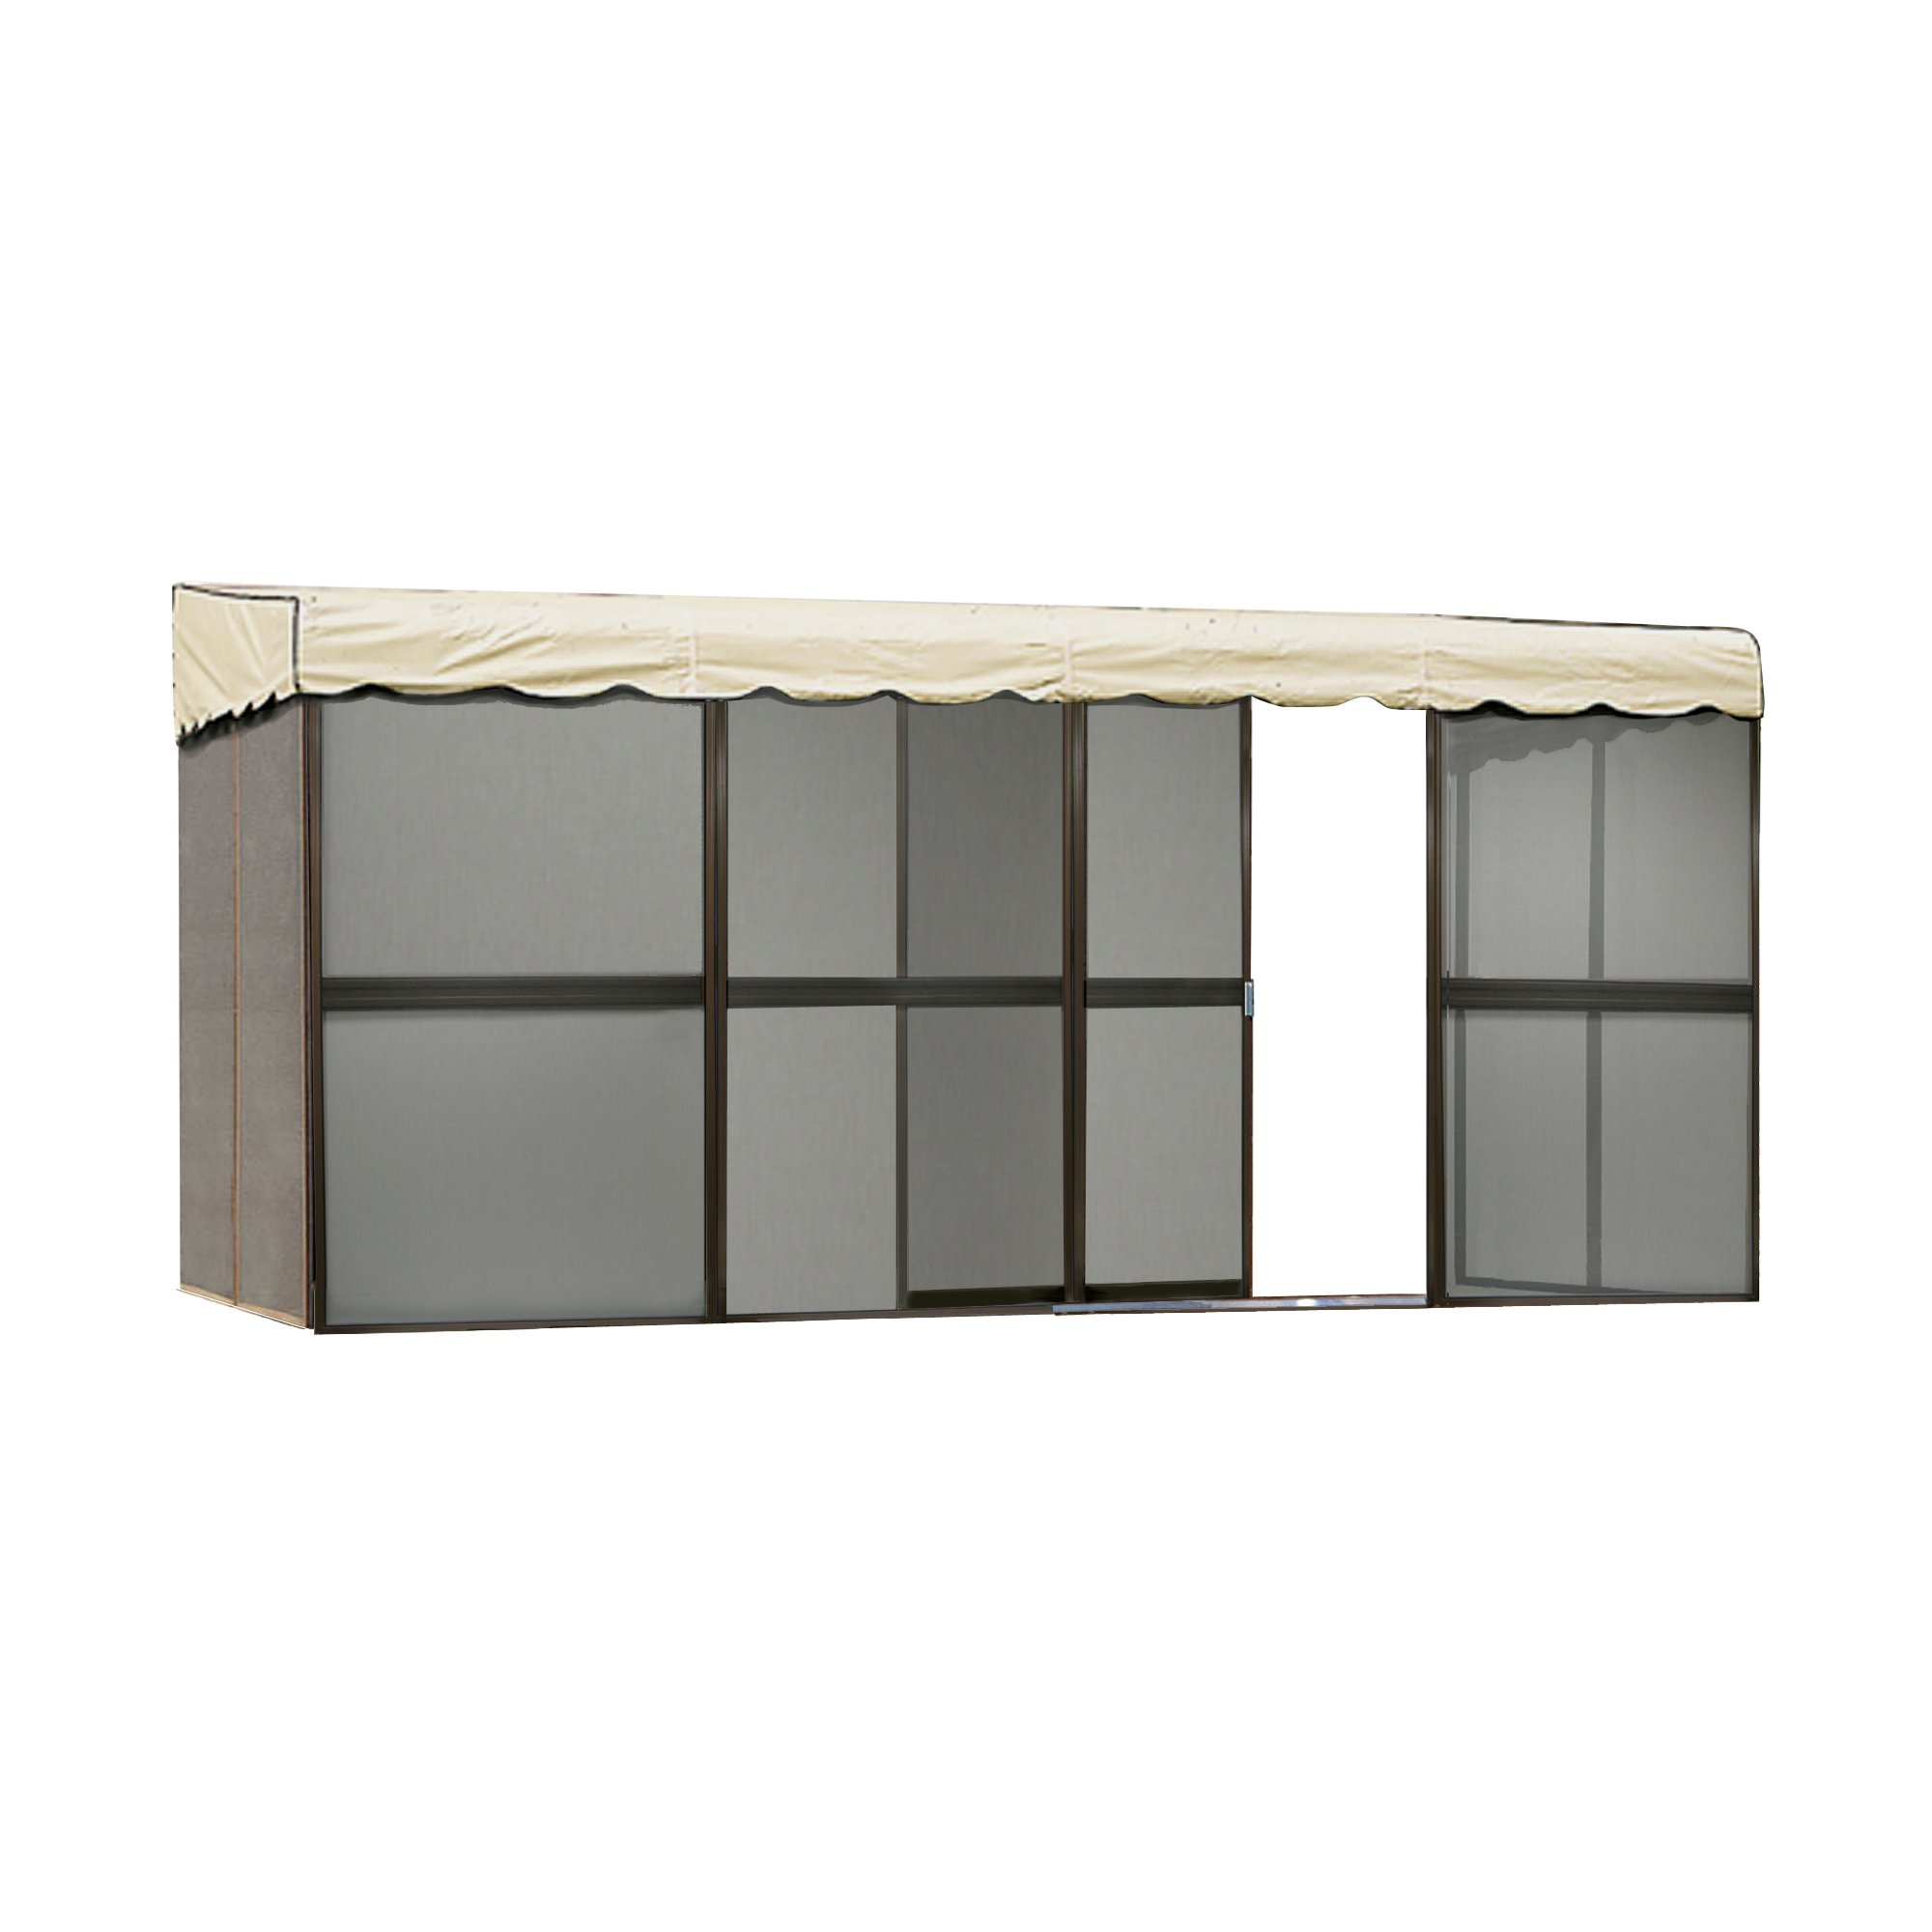 Patio Mate 8-Panel Screen Enclosure 89165, Brown with Almond Roof